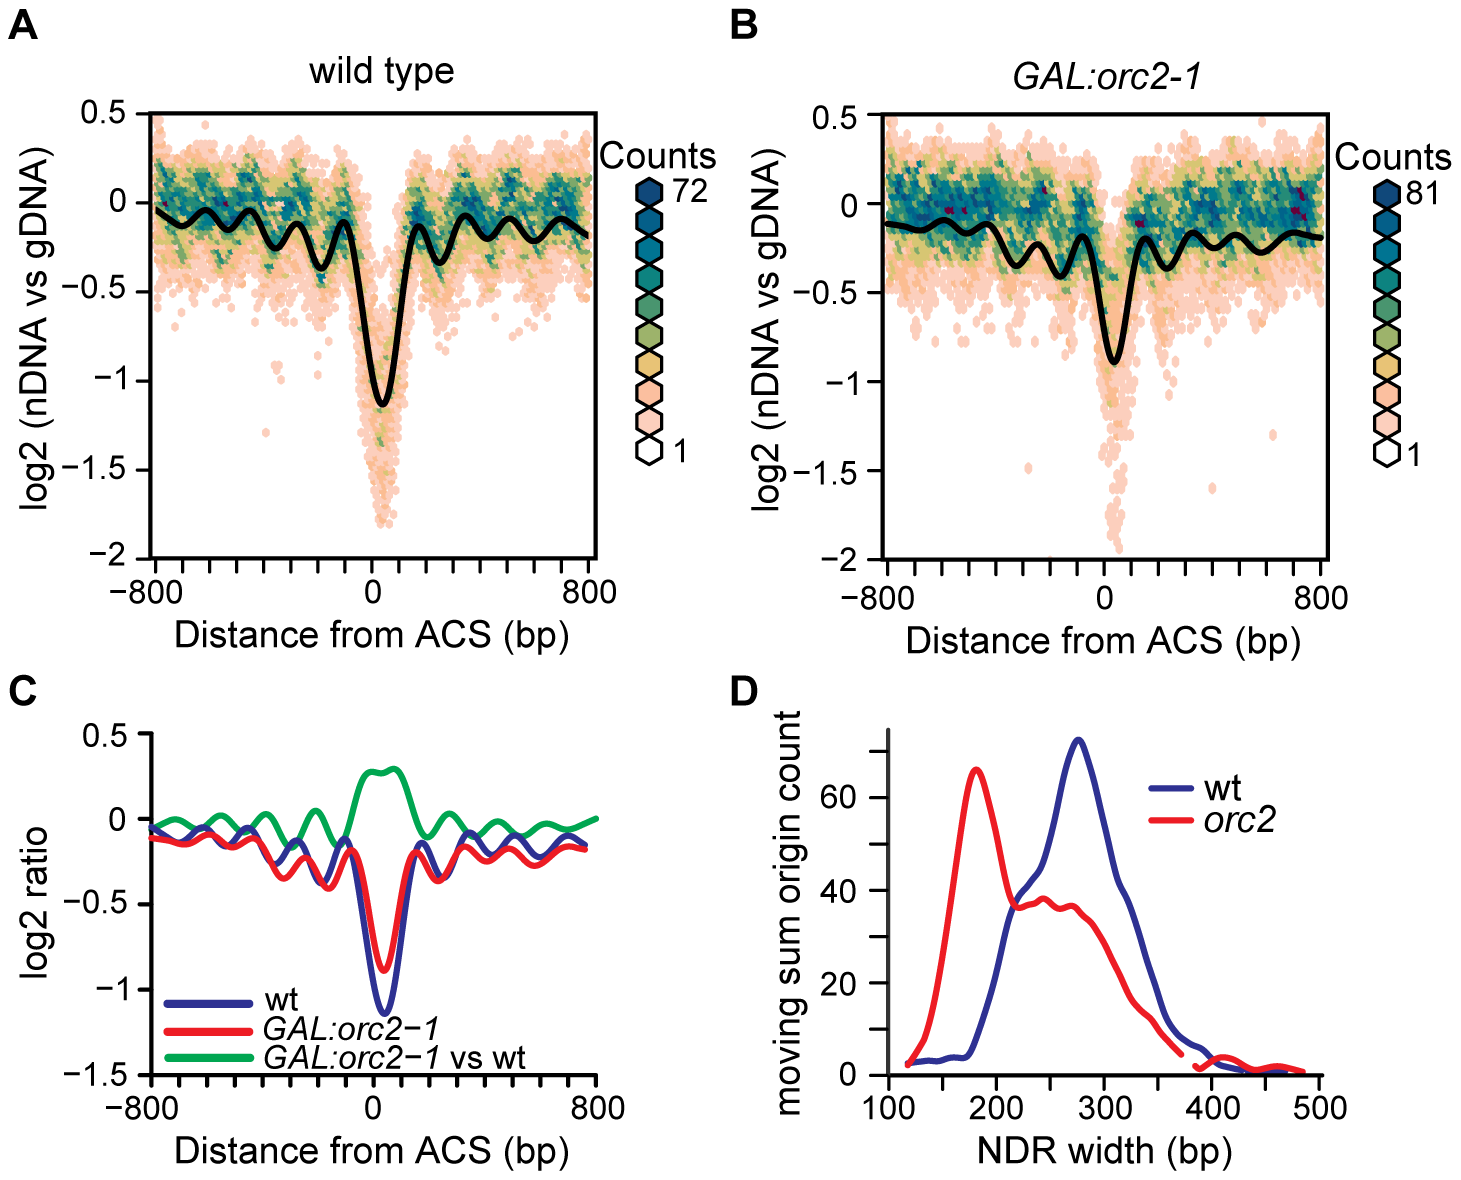 The effect of ORC depletion on nucleosome occupancy.